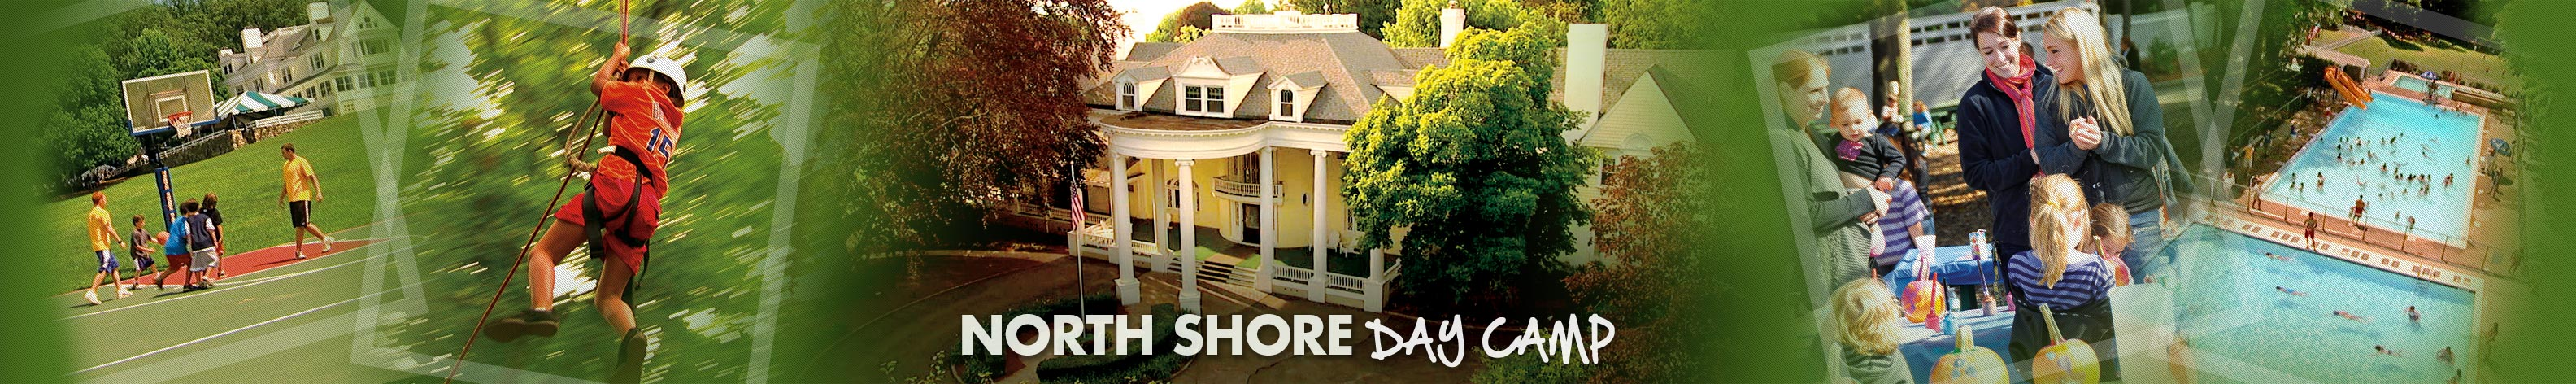 Events at North Shore Day Camp